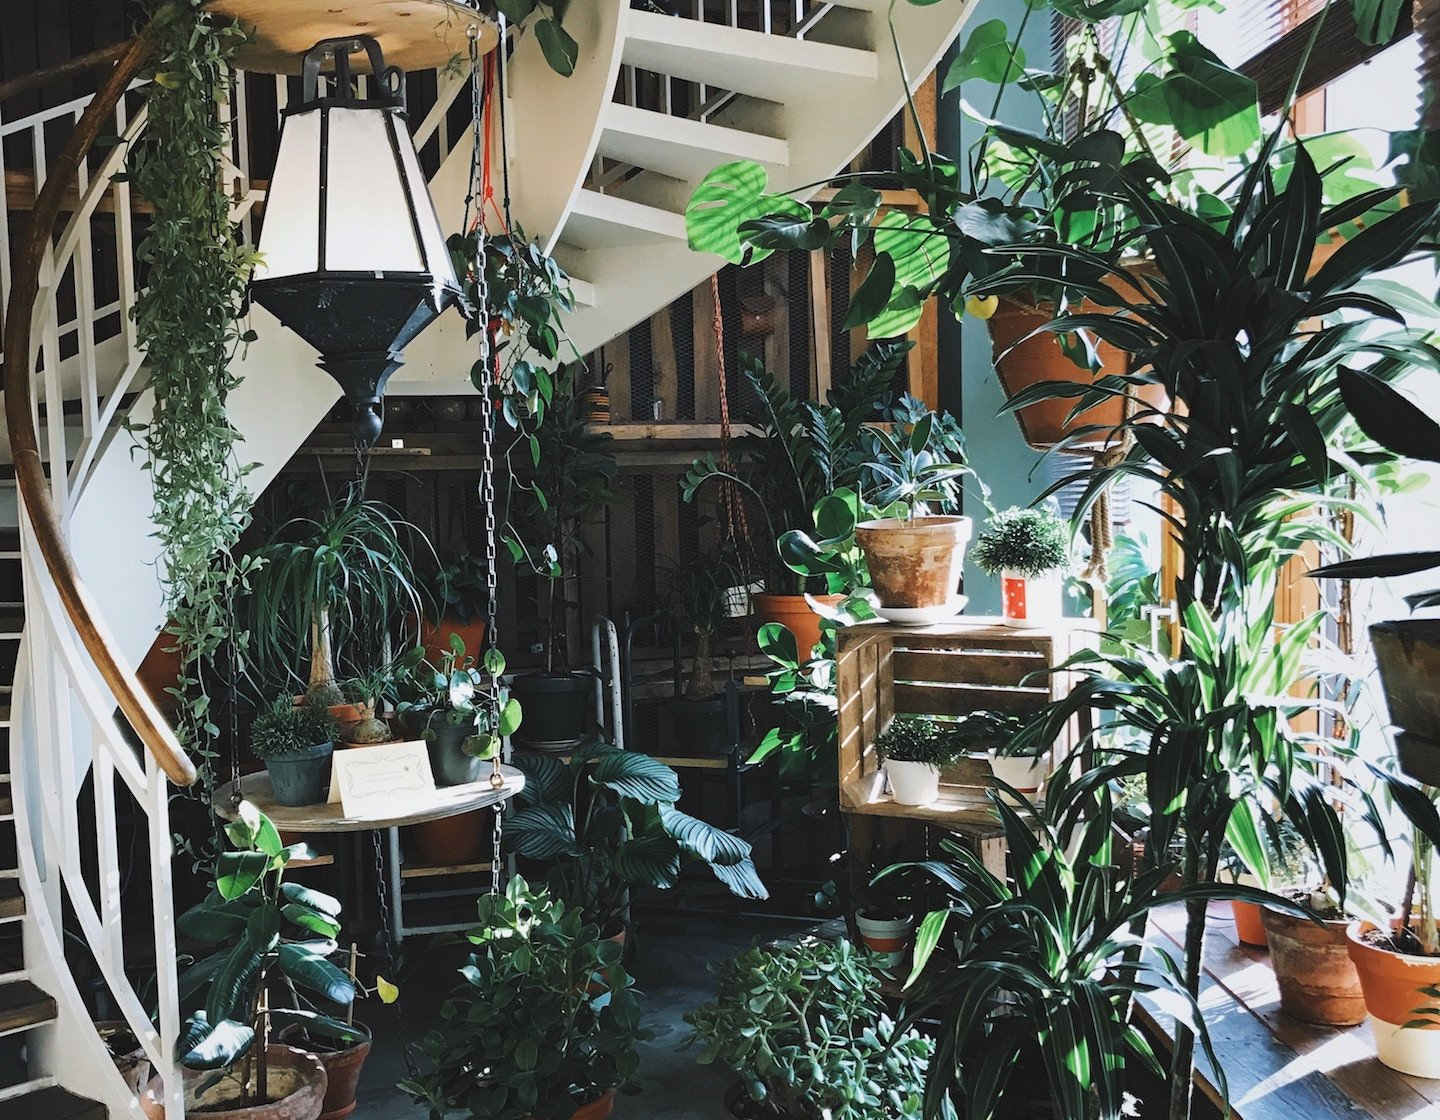 6 Insta Worthy Indoor Plants to Freshen Up Your Home Decor